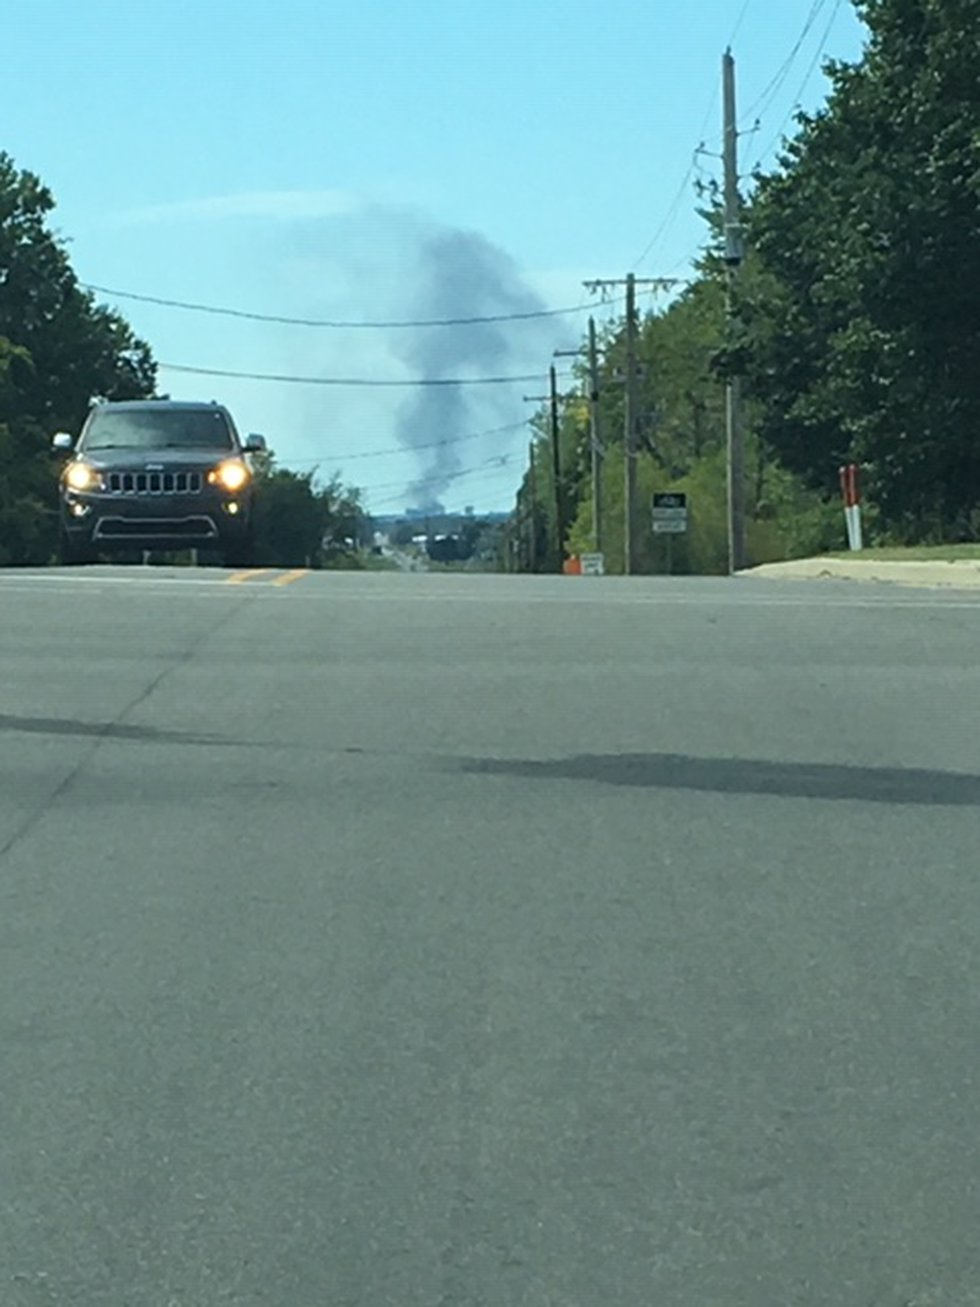 Viewers have sent in pics saying they can see smoke from far away.